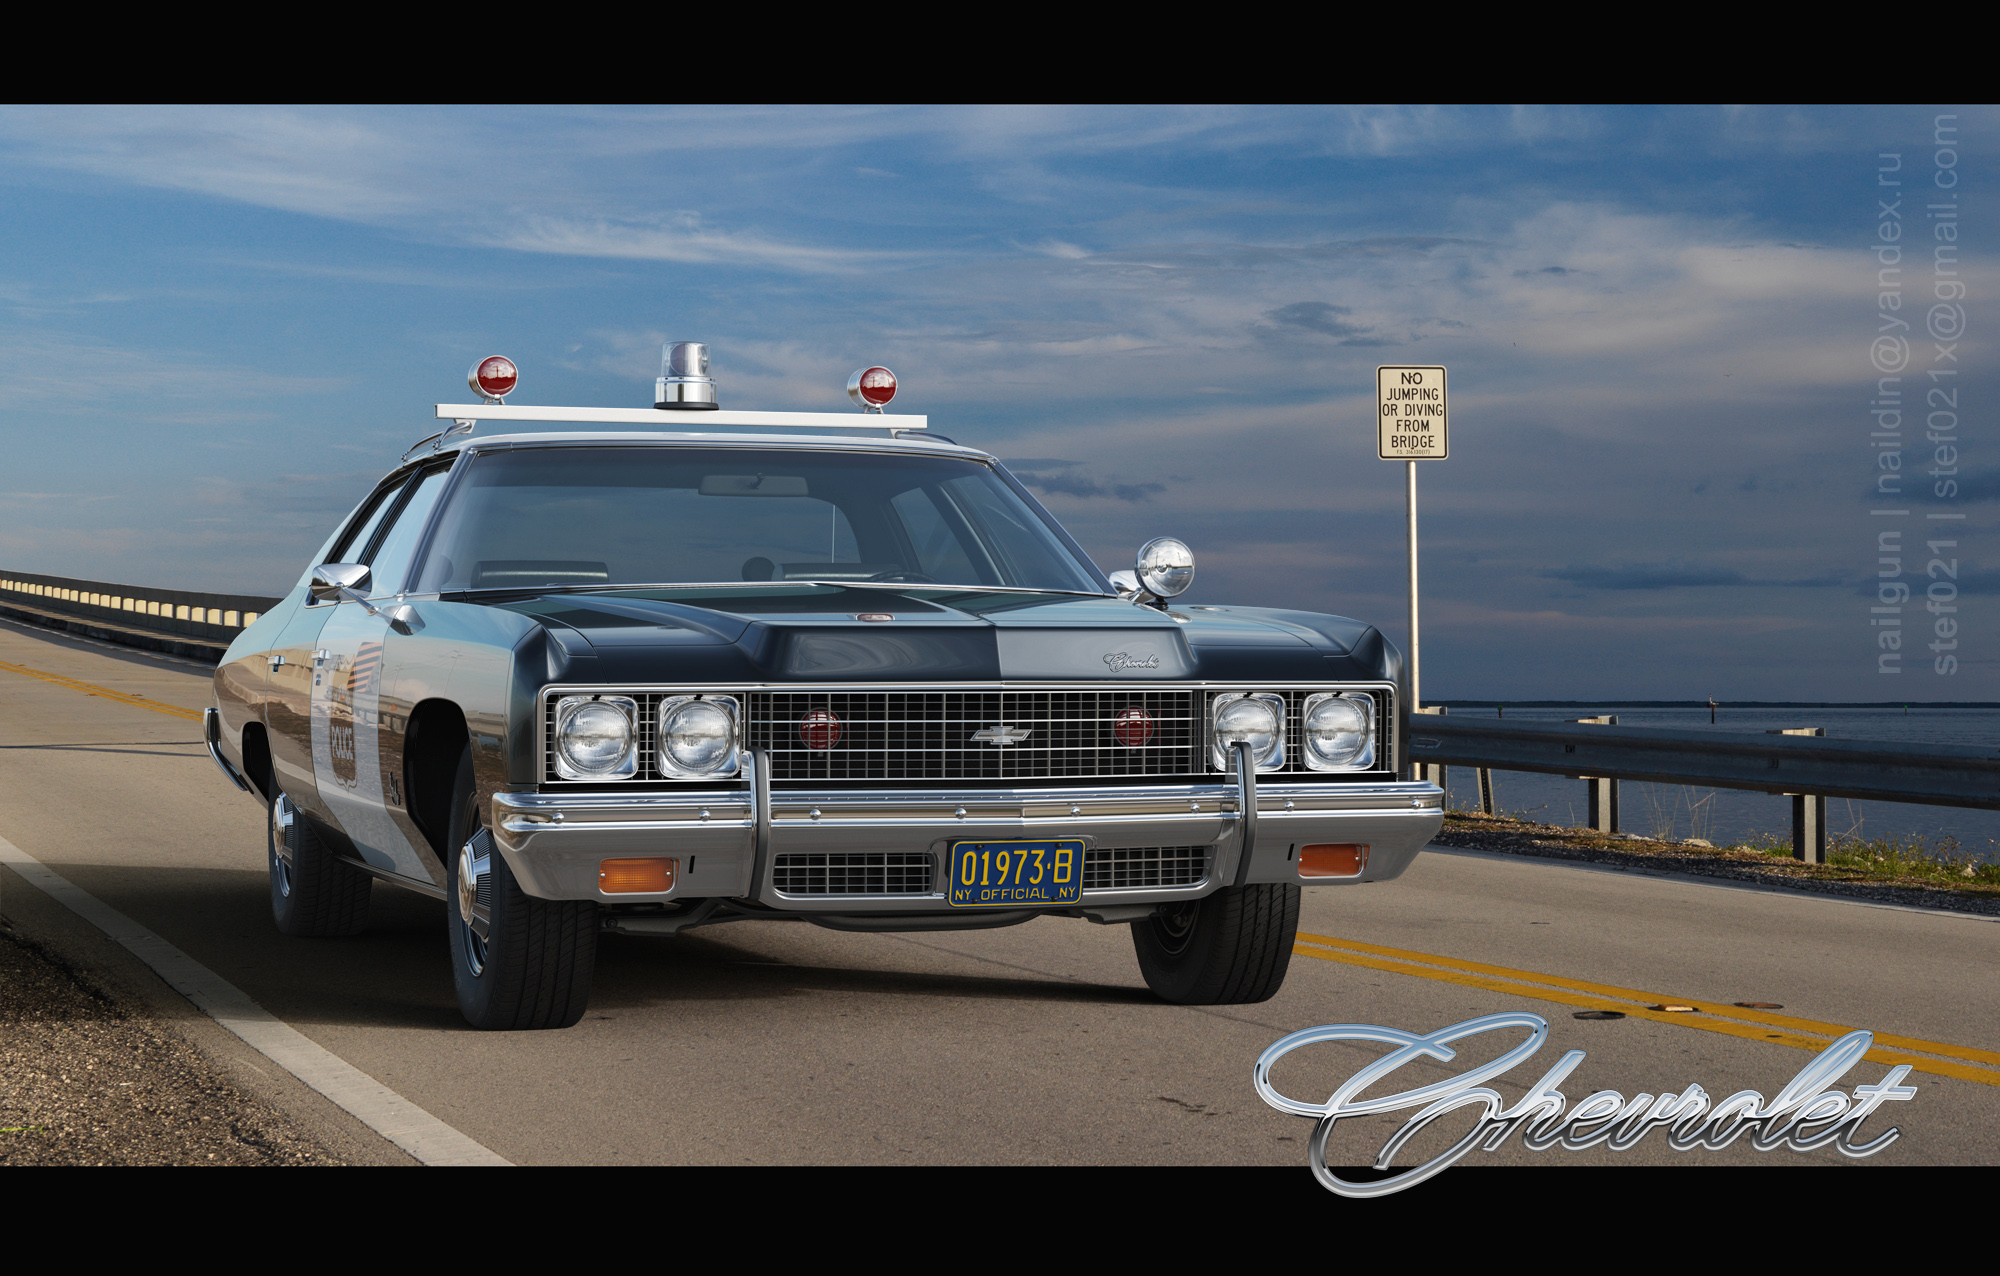 Chevrolet Bel Air `73 Police